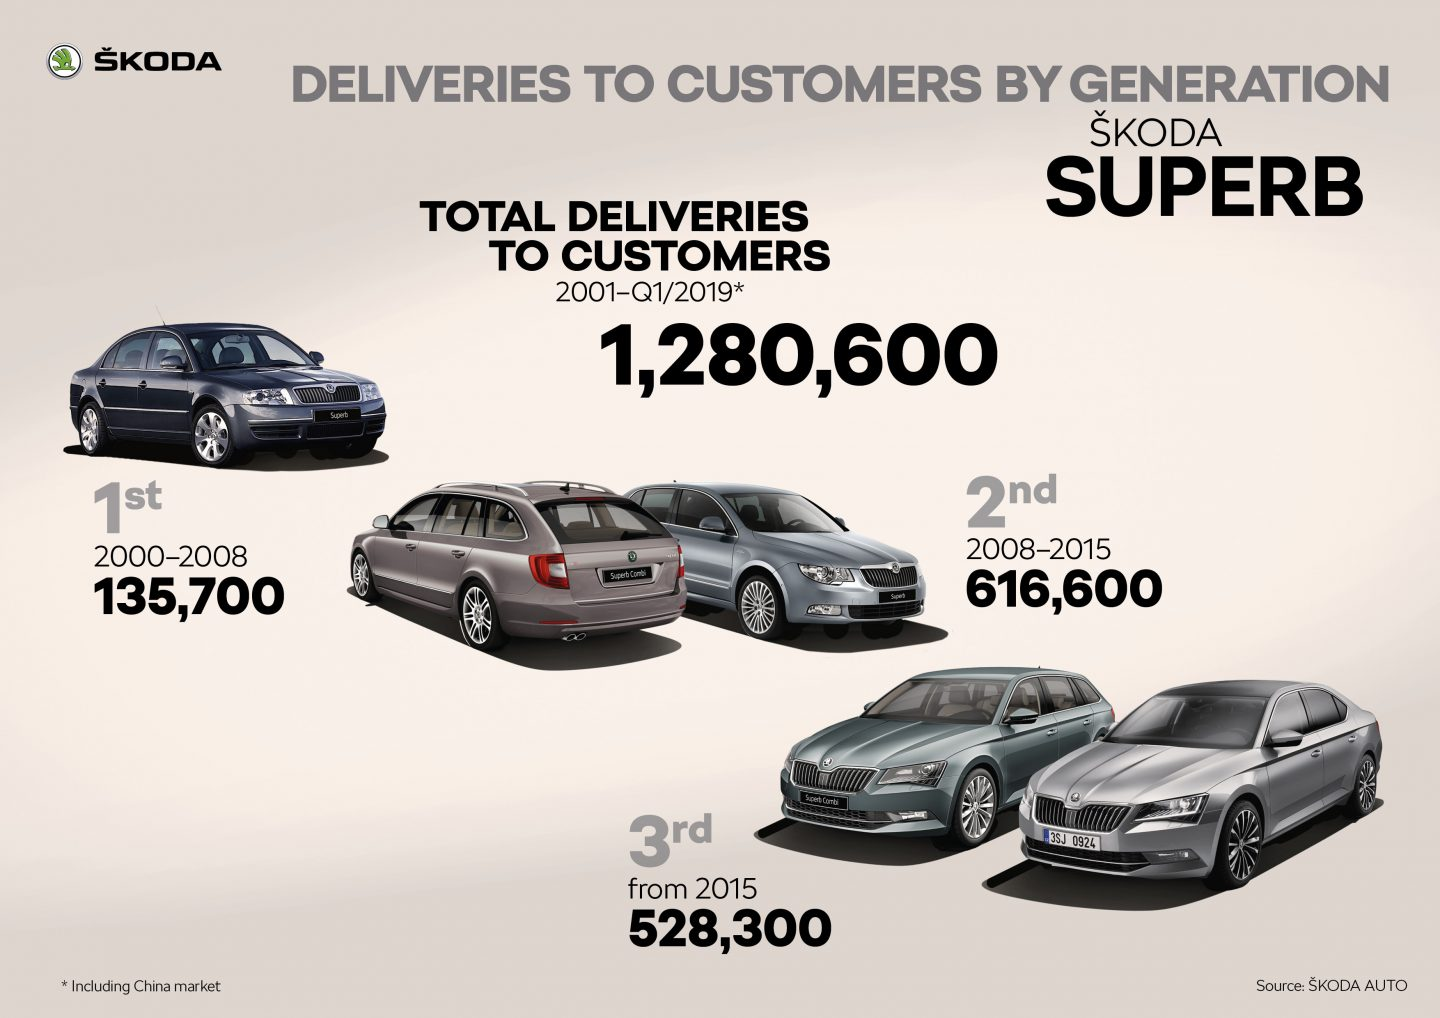 ŠKODA SUPERB Deliveries to customers by generation